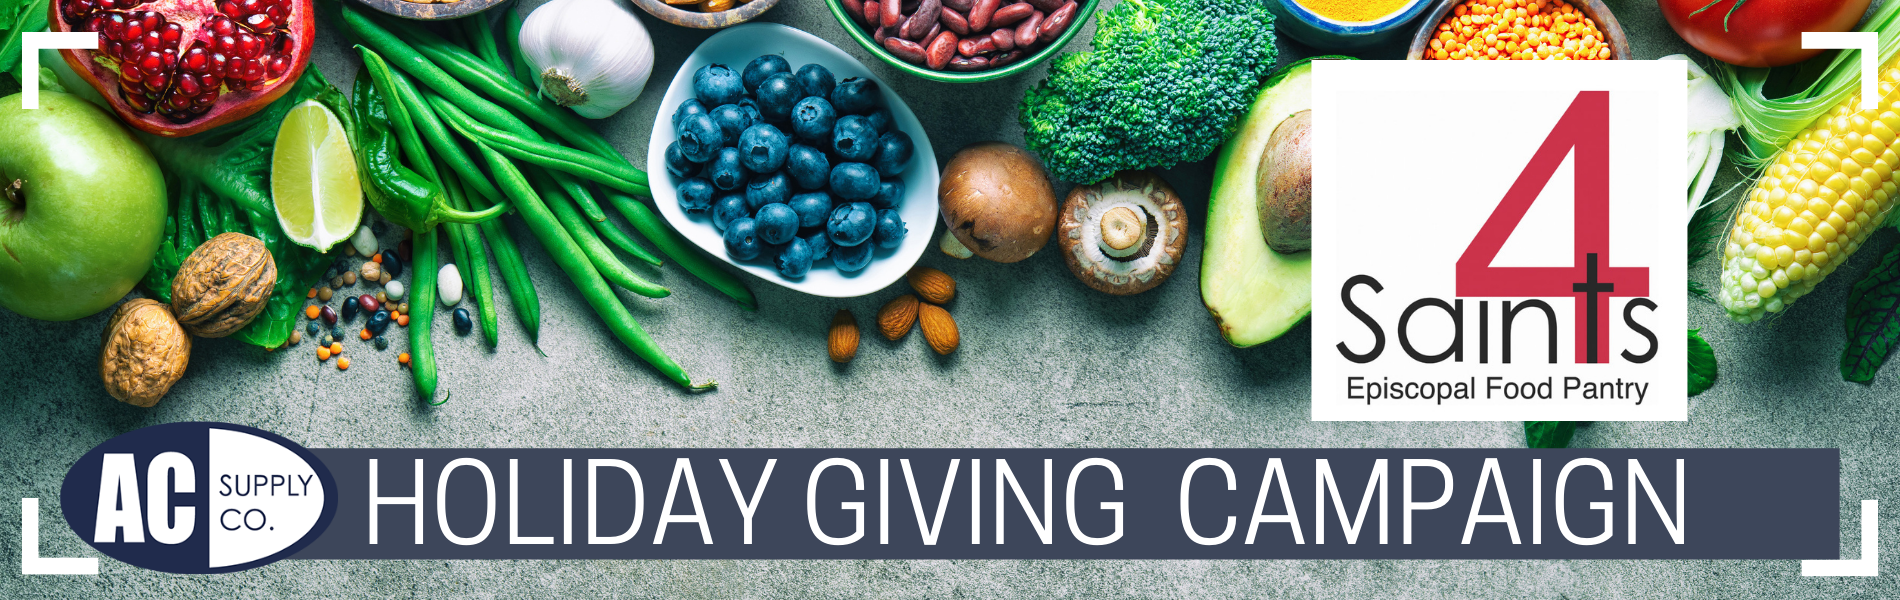 Holiday Giving to End Hunger